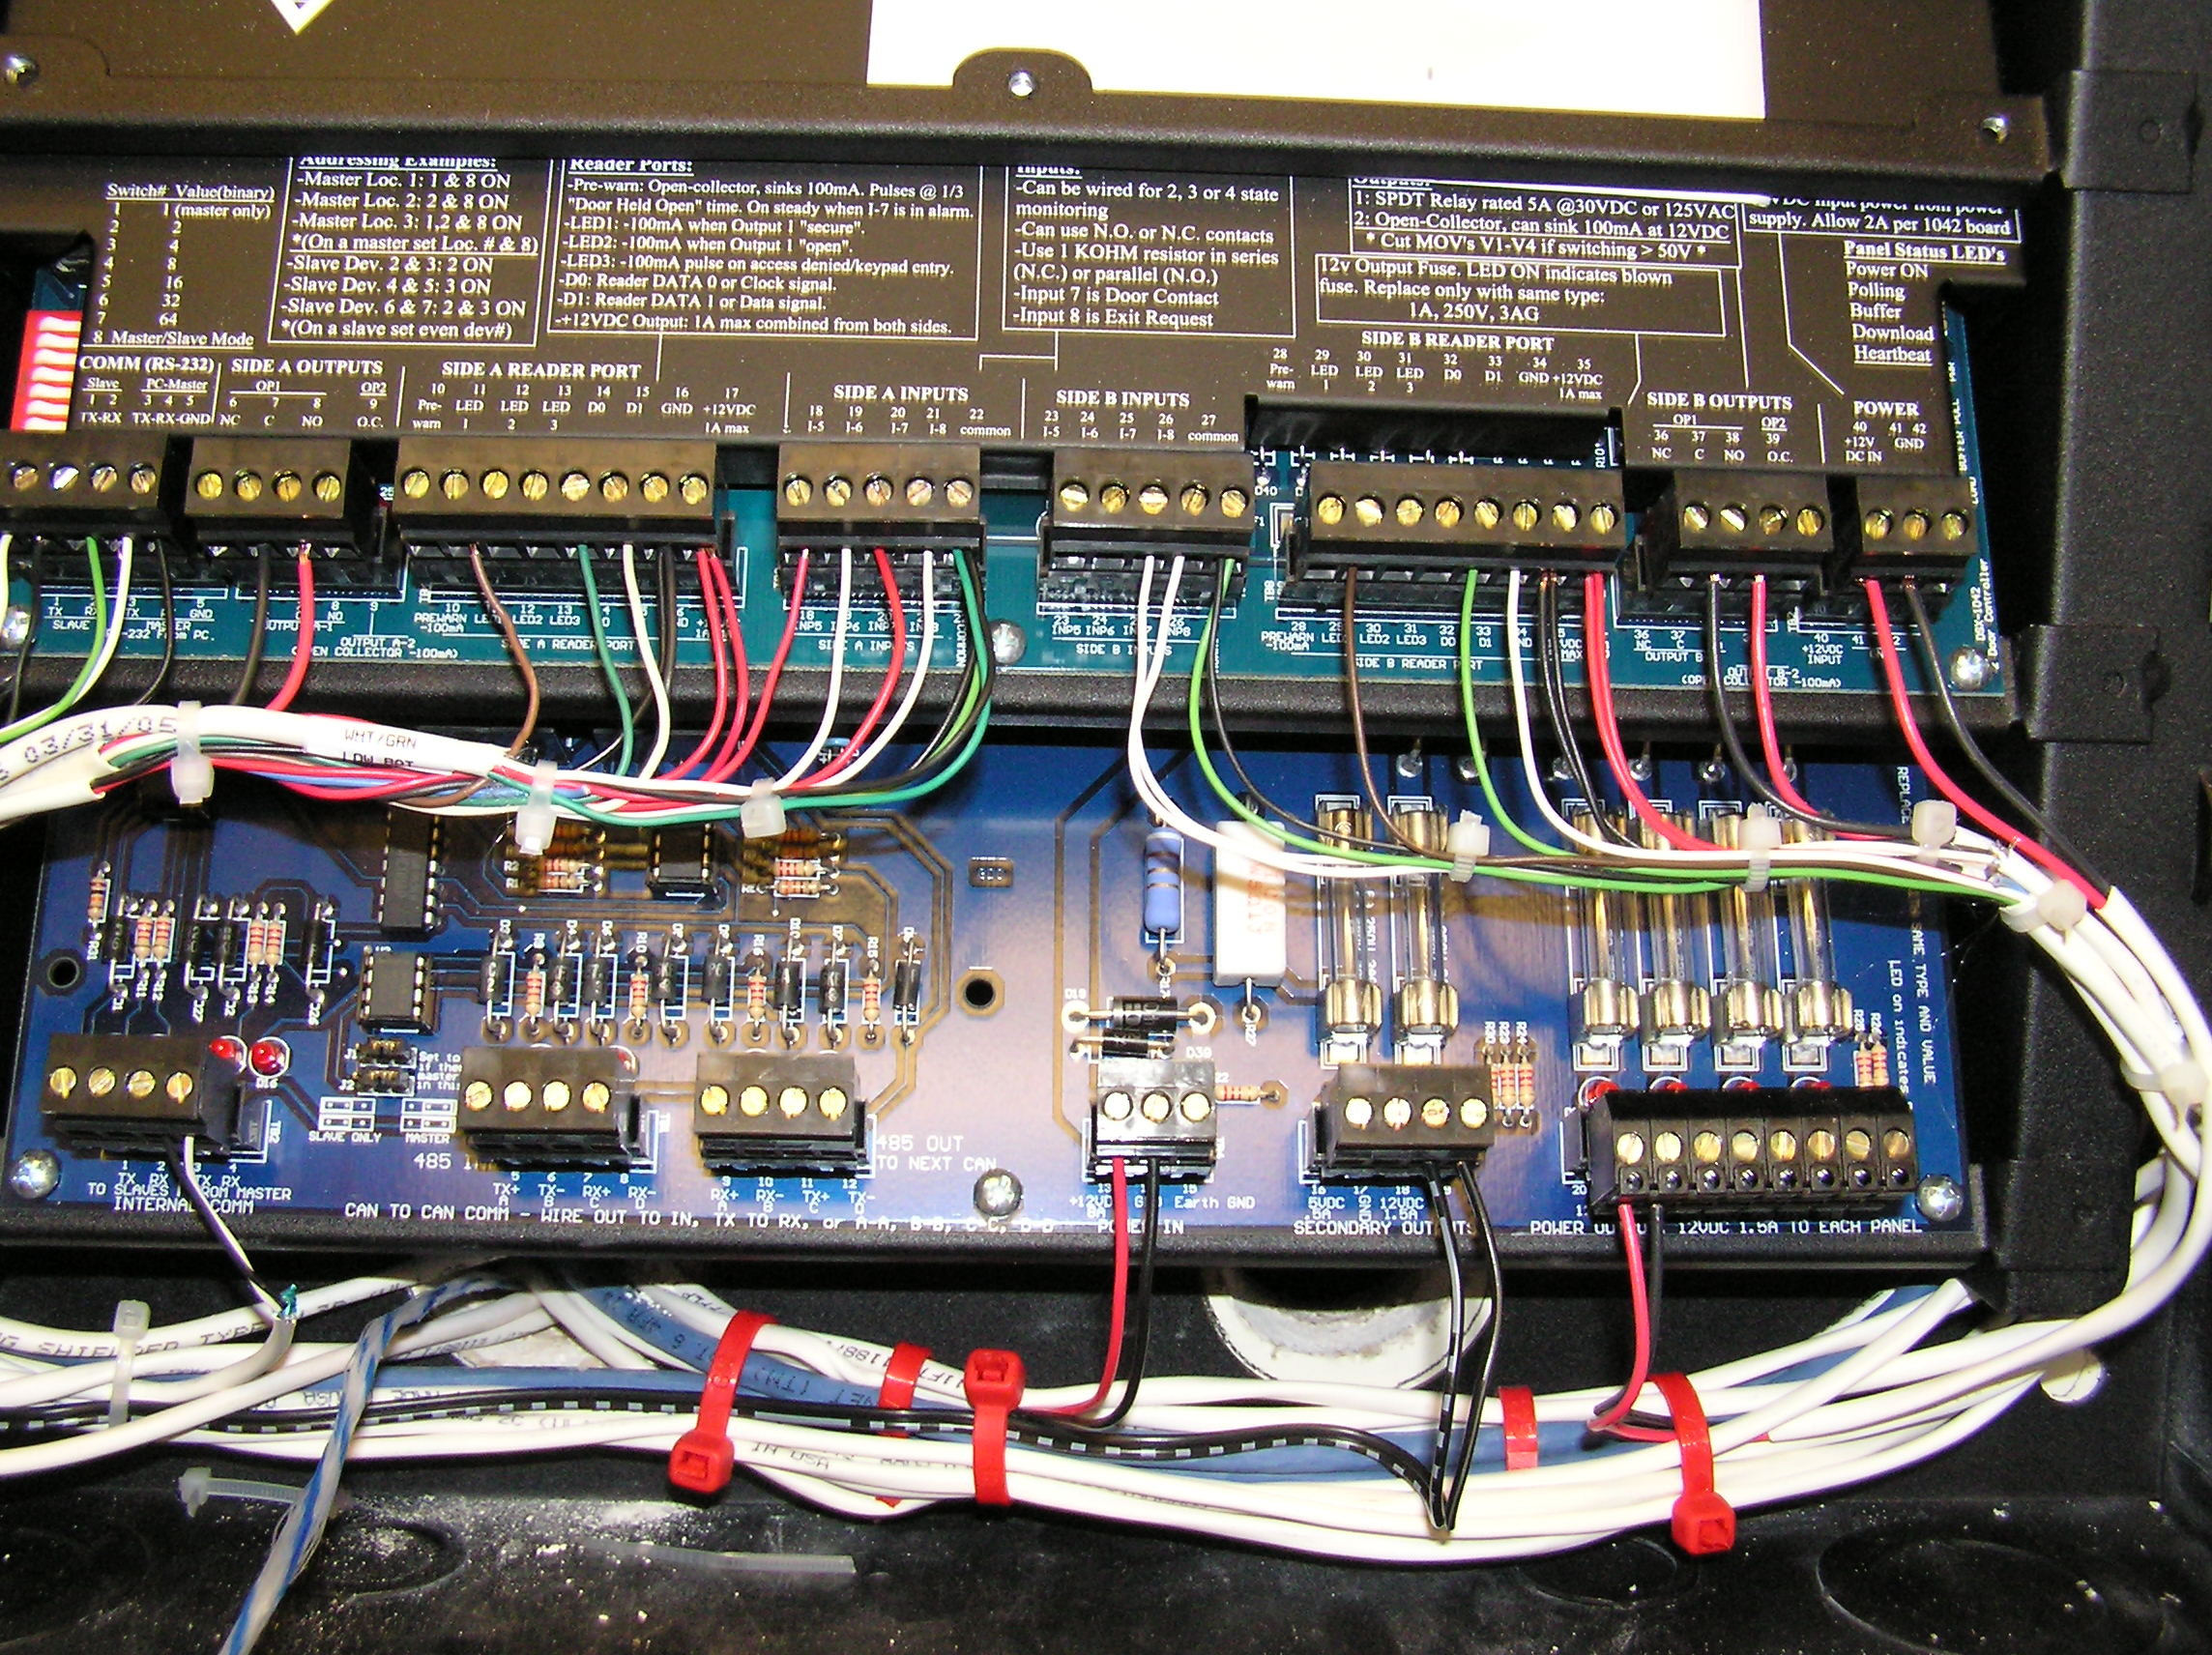 Dsx Wiring Diagram - Secure Wiring Diagram cable-pan -  cable-pan.sosanziani.it | Dsx 1048 Wiring Diagram |  | wiring diagrams - sosanziani.it